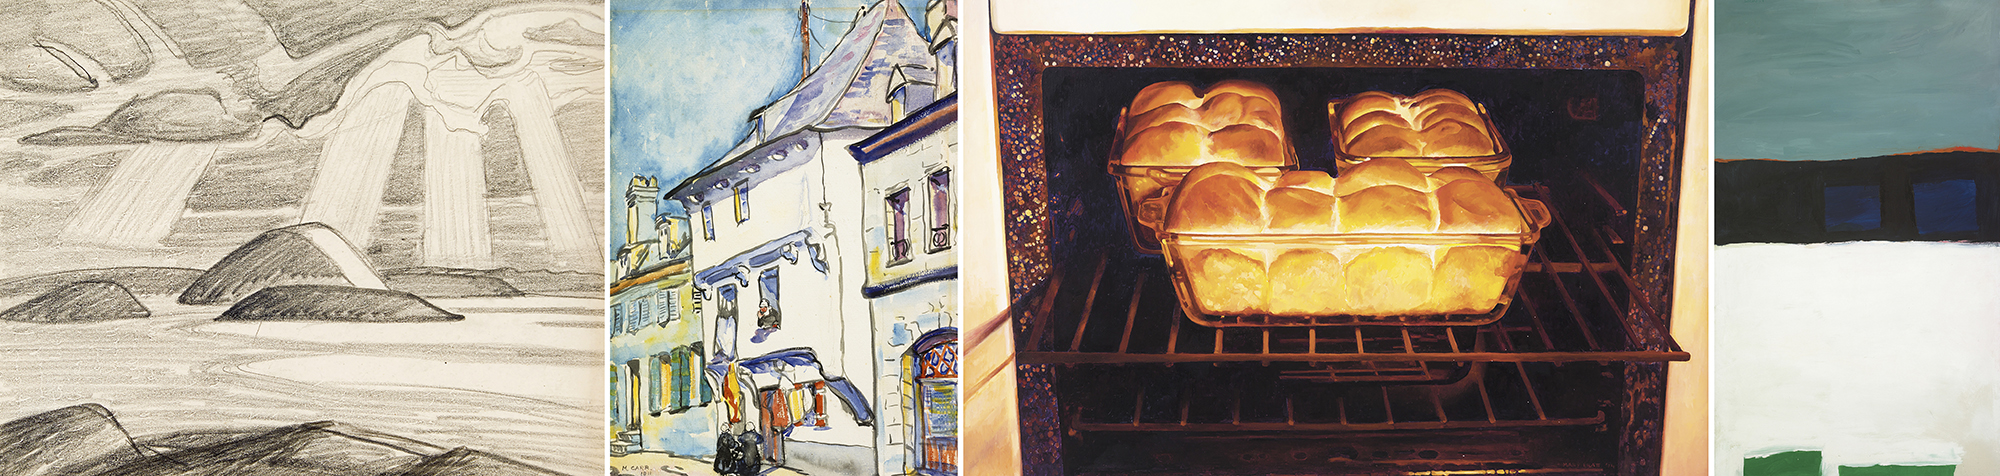 (Left to Right) Lawren Harris, Lake Superior (I.D. 463); Emily Carr, European Street Scene; Mary Pratt, Baking Bread; Michael Snow, Off Minor (1958)